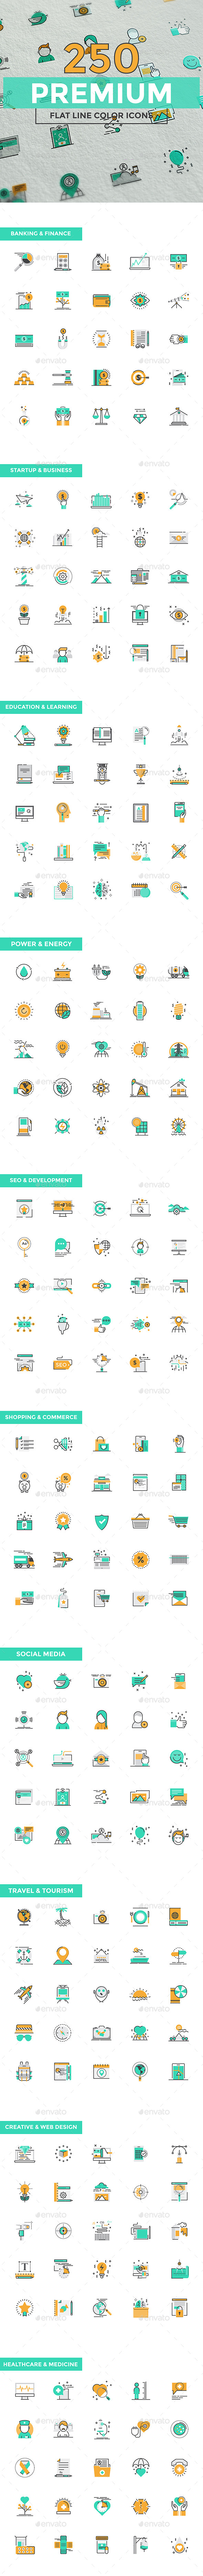 Set of Modern Color Line Design Icons - Web Icons